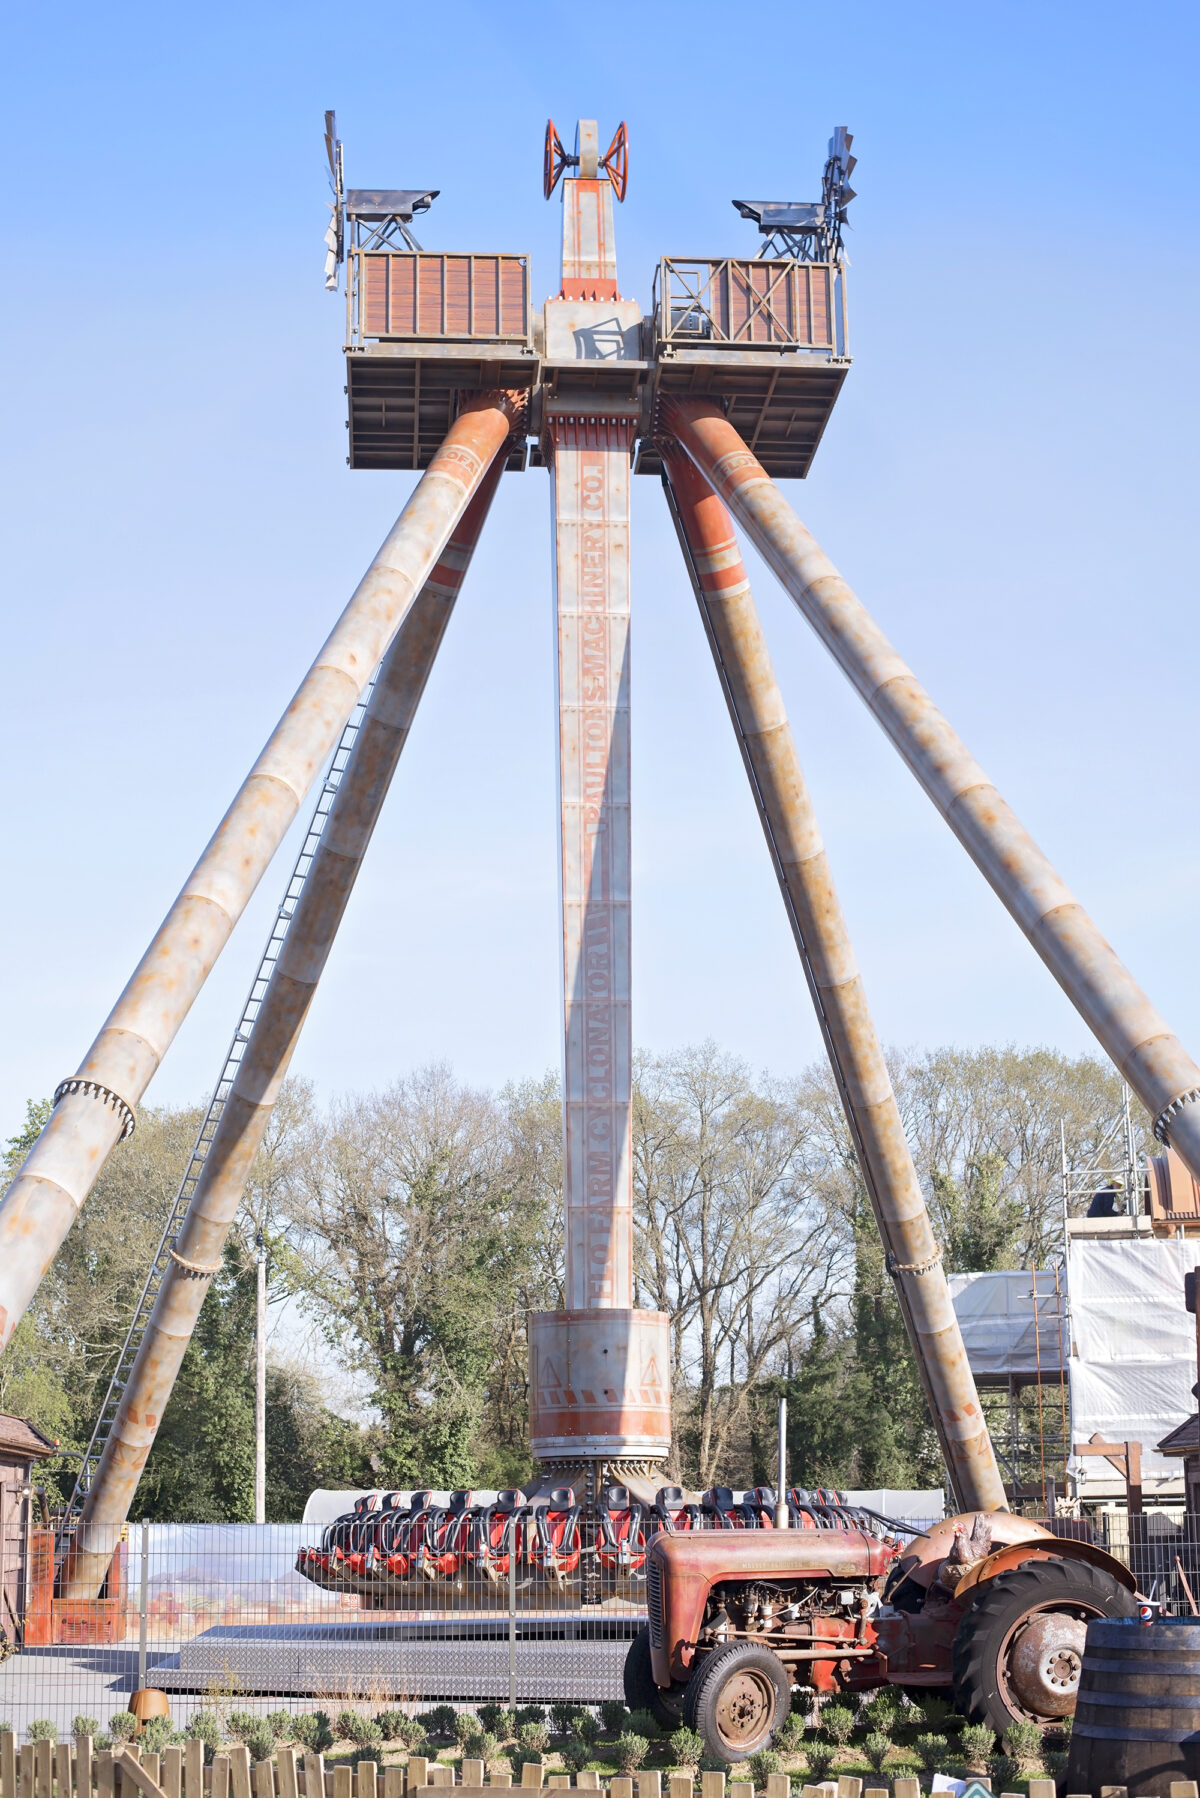 Image shows the cyclonator, empty, at Tornado Springs in Paultons Park.